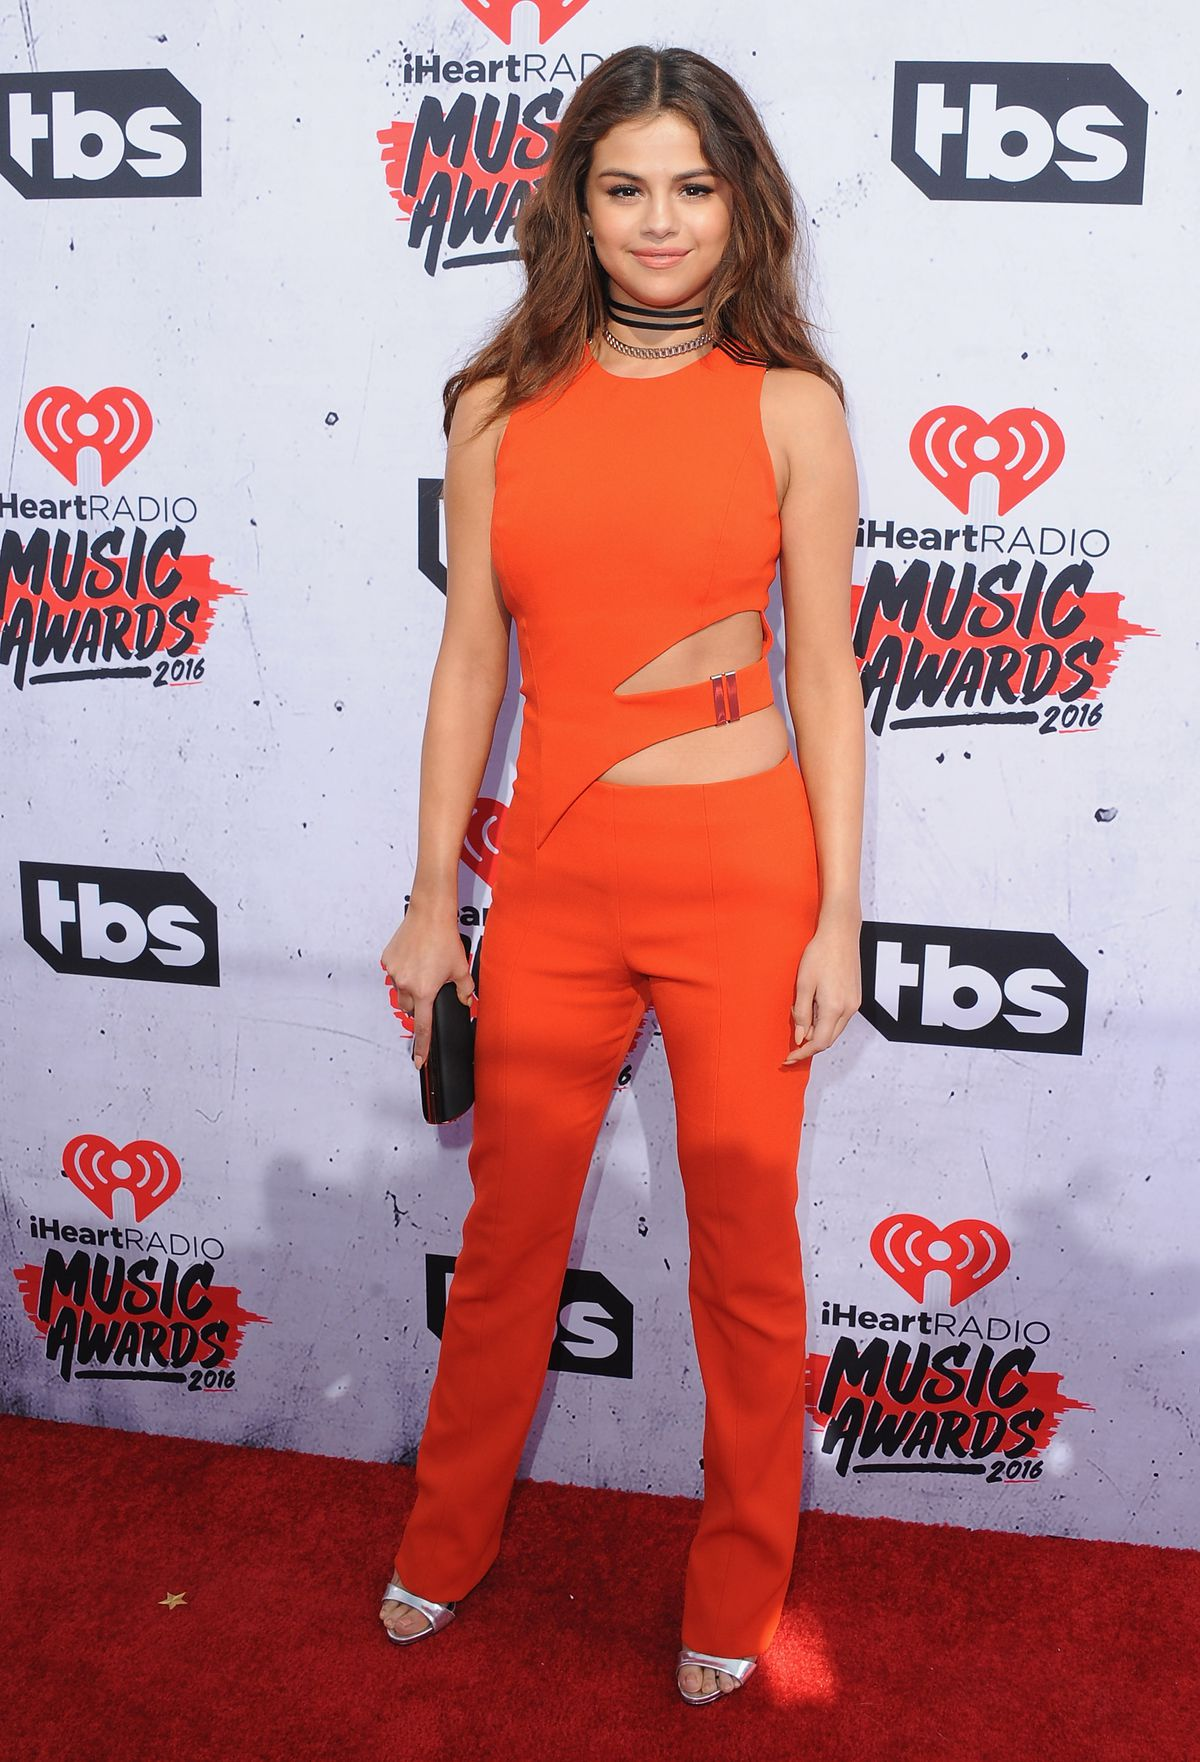 Selena Gomez in a Mugler jumpsuit at the 2016 iHeartRadio Music Awards.